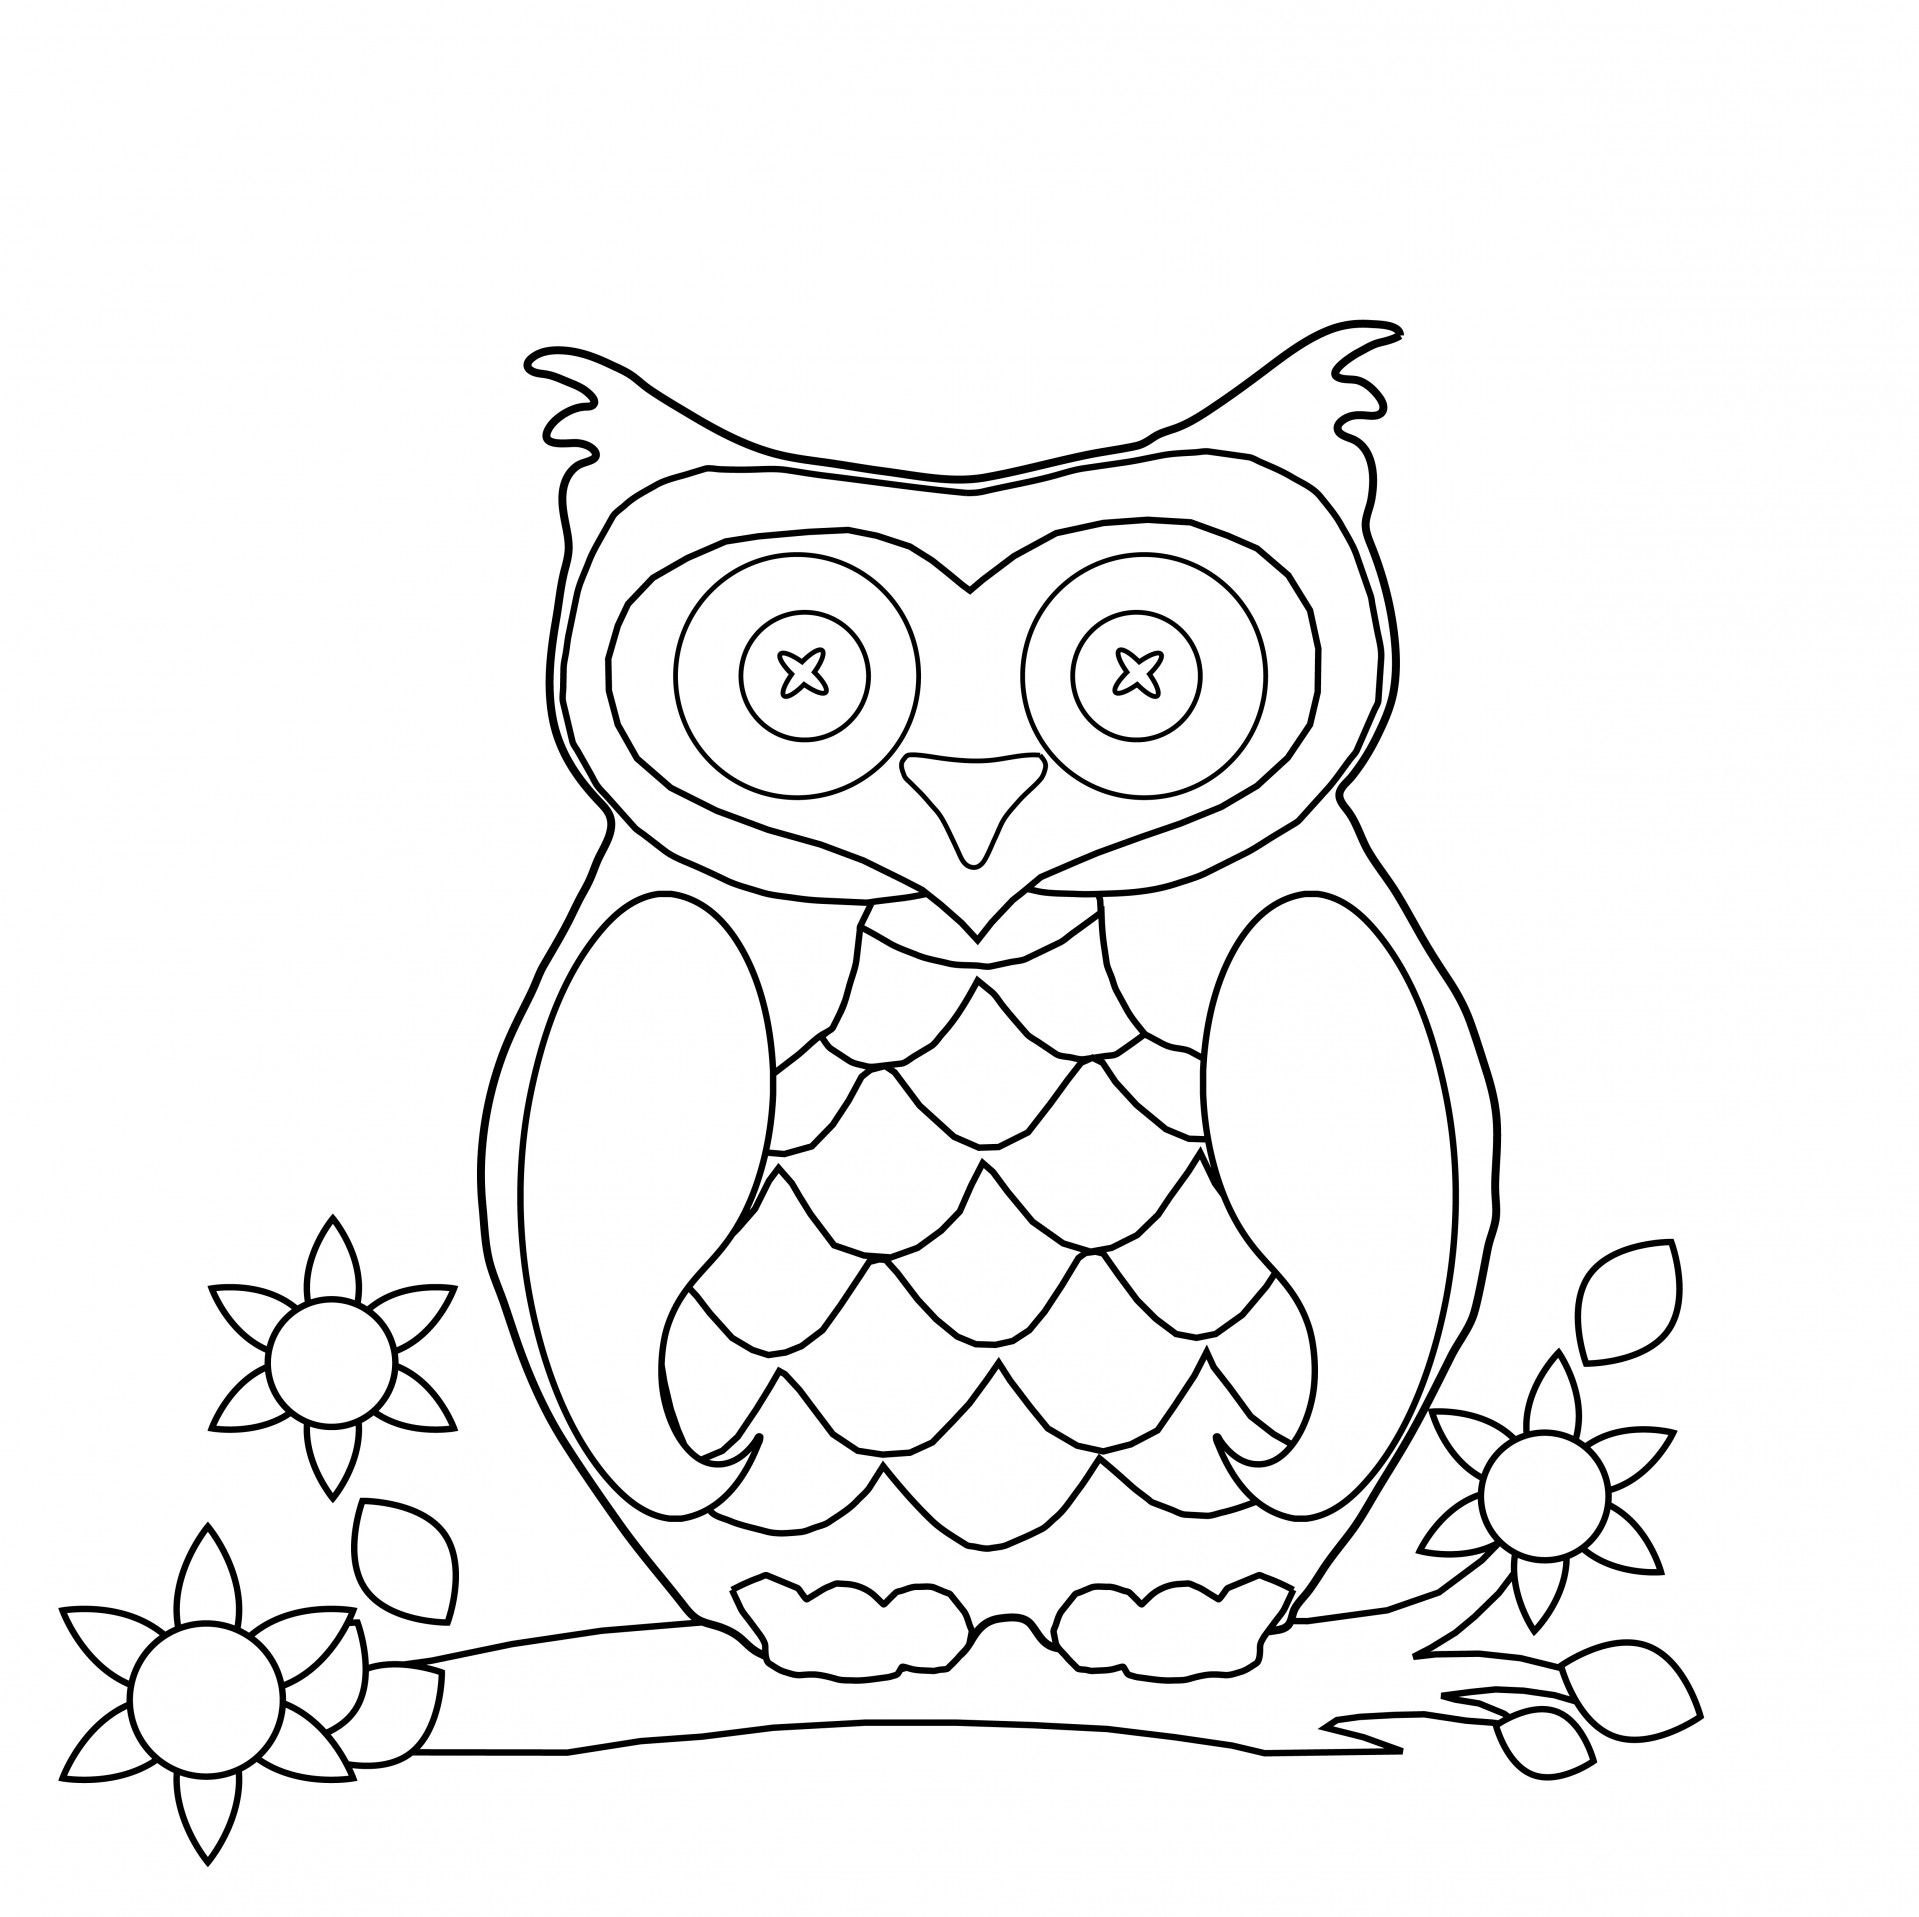 free design coloring pages free printable abstract coloring pages for adults free design coloring pages